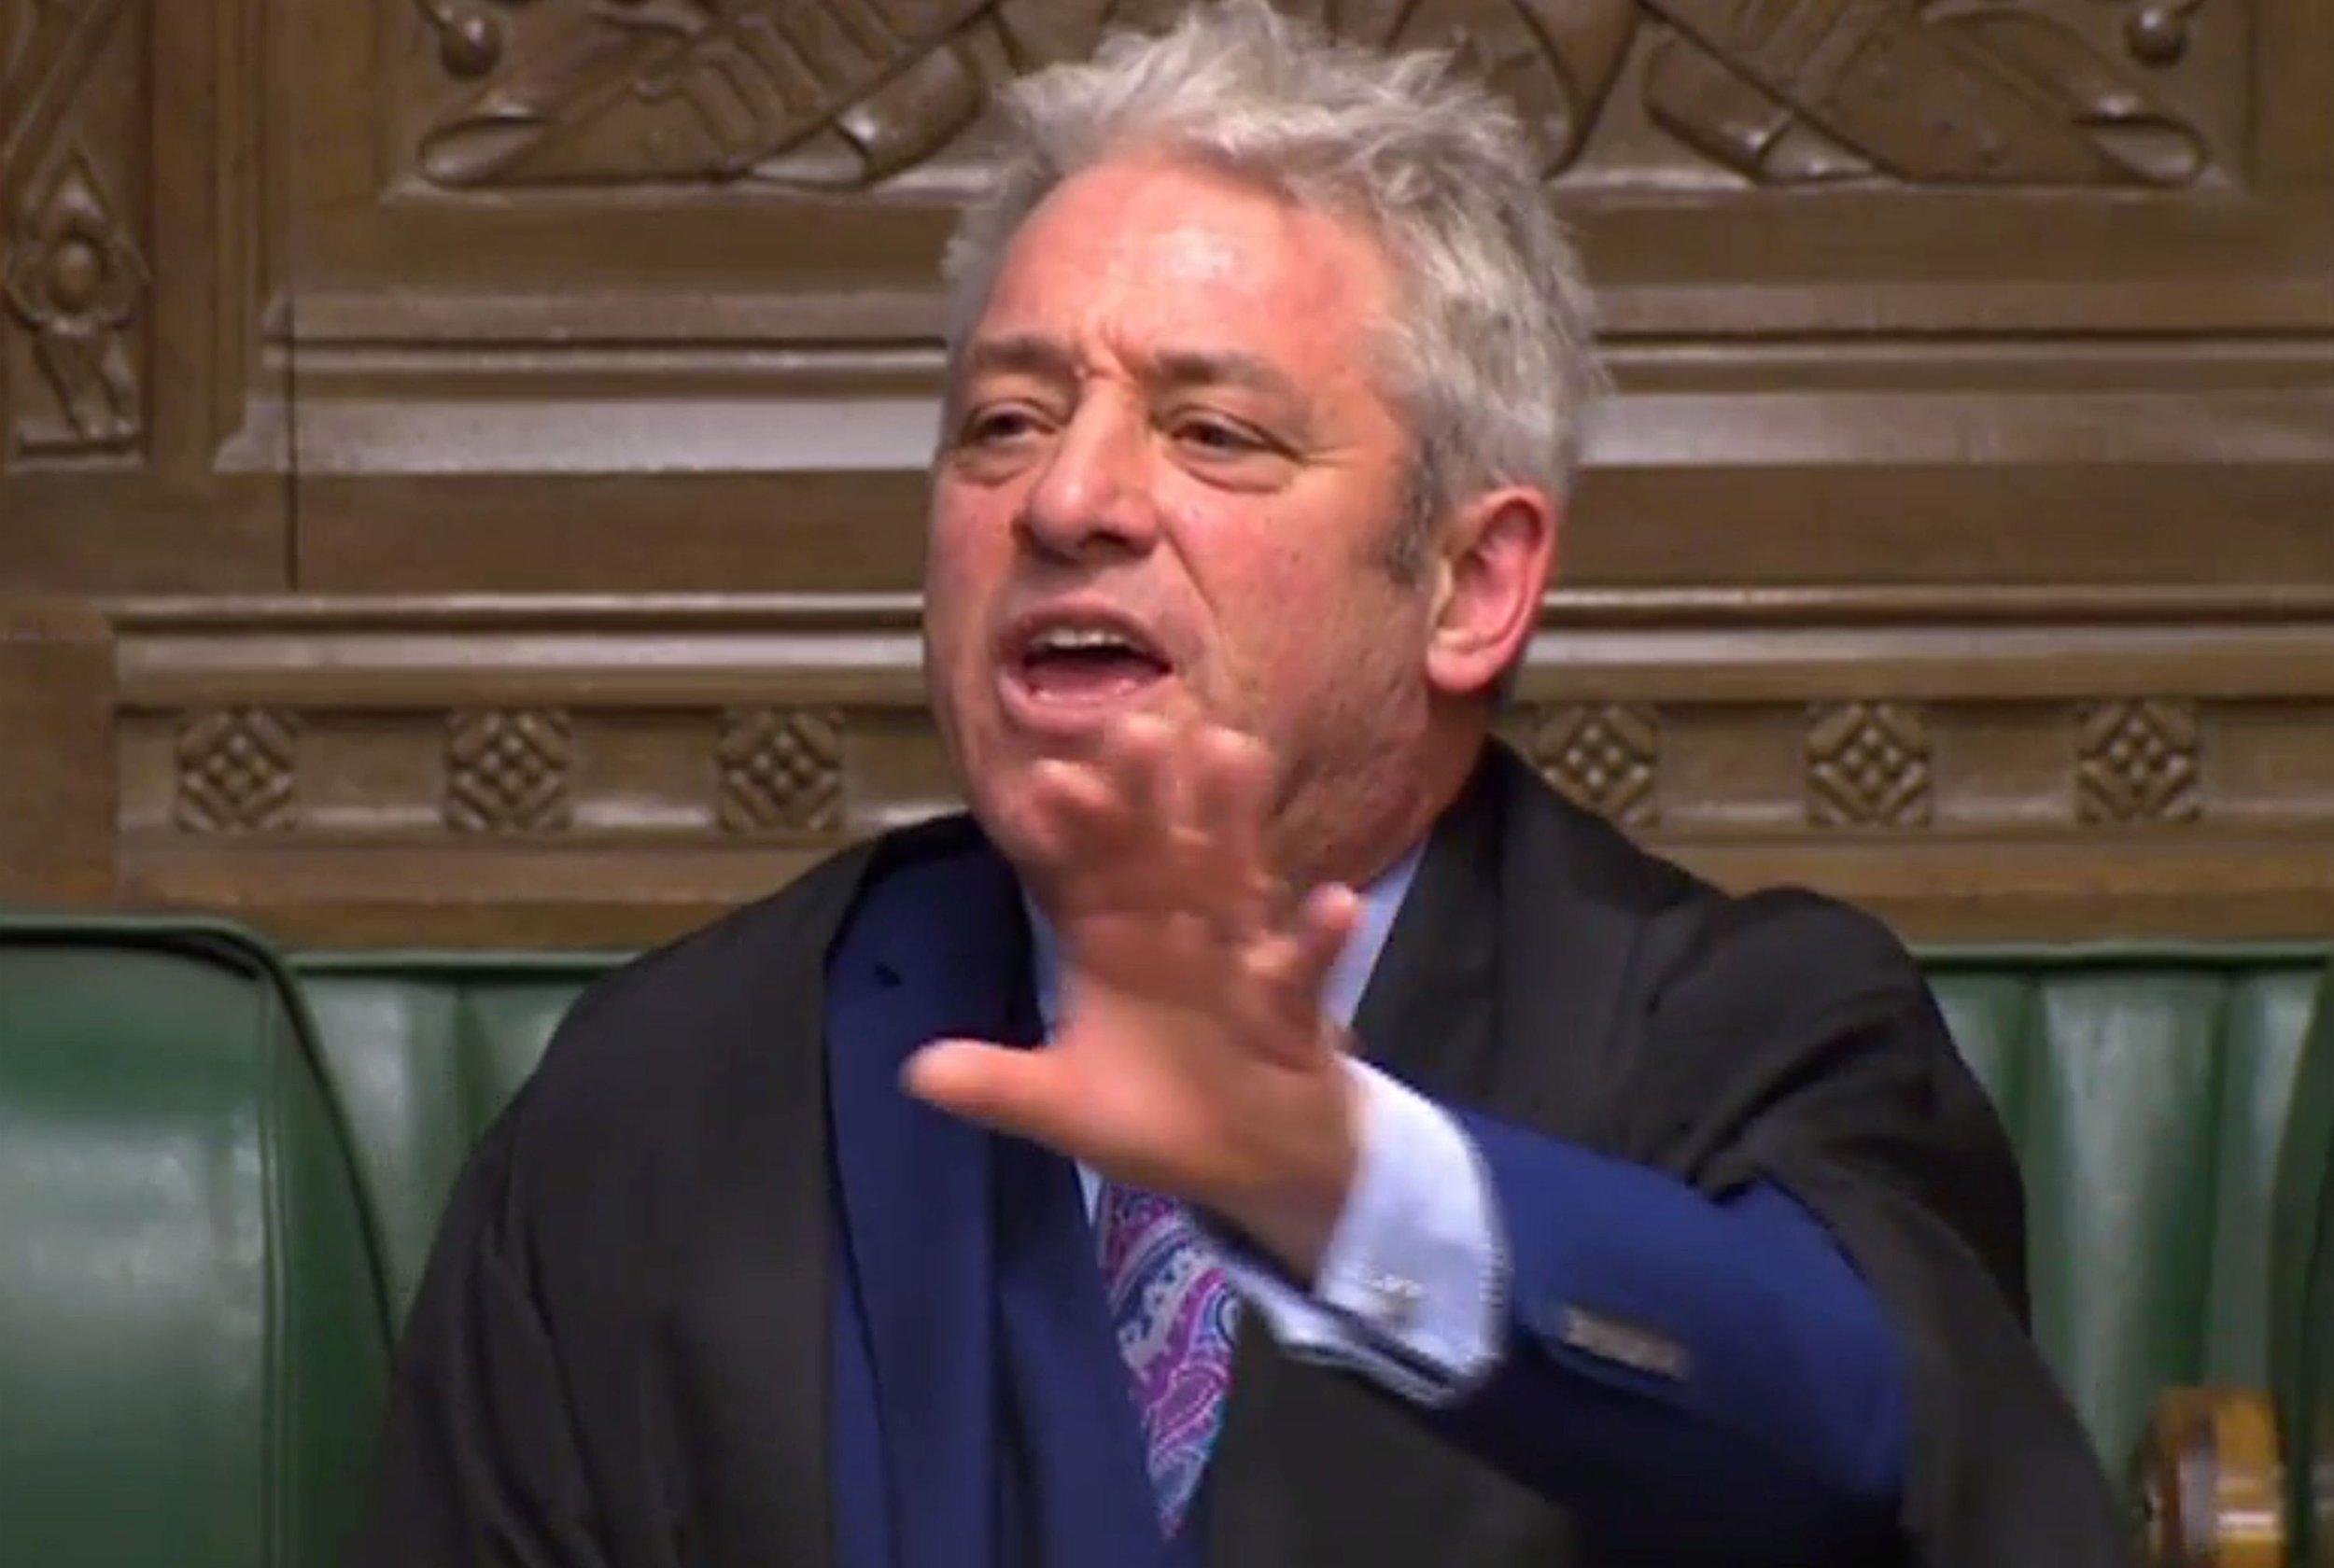 """A video grab from footage broadcast by the UK Parliament's Parliamentary Recording Unit (PRU) shows Speaker of the House of Commons John Bercow speaking in the House of Commons regarding the selection for a vote of an ammendment to the Brexit withdrawl bill in London on January 9, 2019. - Britain's government suffered another setback on January 9, 2019 as MPs voted to force it to announce within three sitting days what steps it will take next if its Brexit deal is rejected by parliament next week as appears likely. (Photo by HO / PRU / AFP) / RESTRICTED TO EDITORIAL USE - MANDATORY CREDIT """" AFP PHOTO / PRU """" - NO USE FOR ENTERTAINMENT, SATIRICAL, MARKETING OR ADVERTISING CAMPAIGNSHO/AFP/Getty Images"""